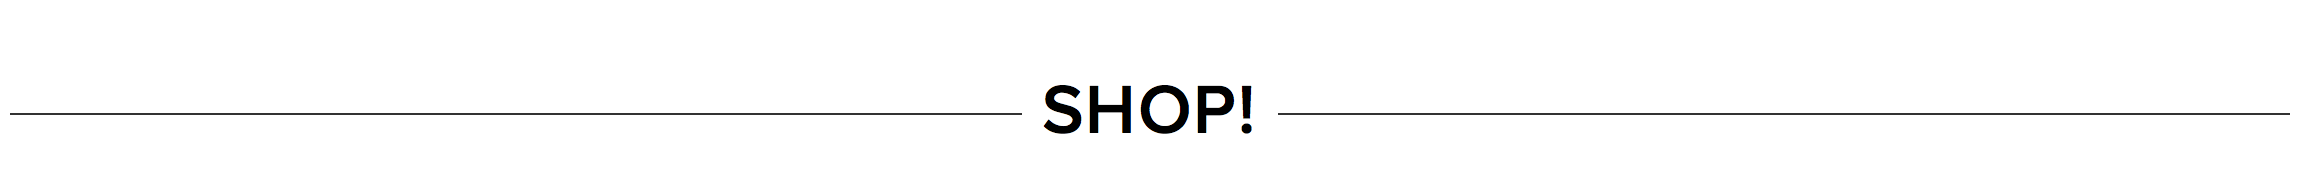 Shop during Saleabration and get FREE items